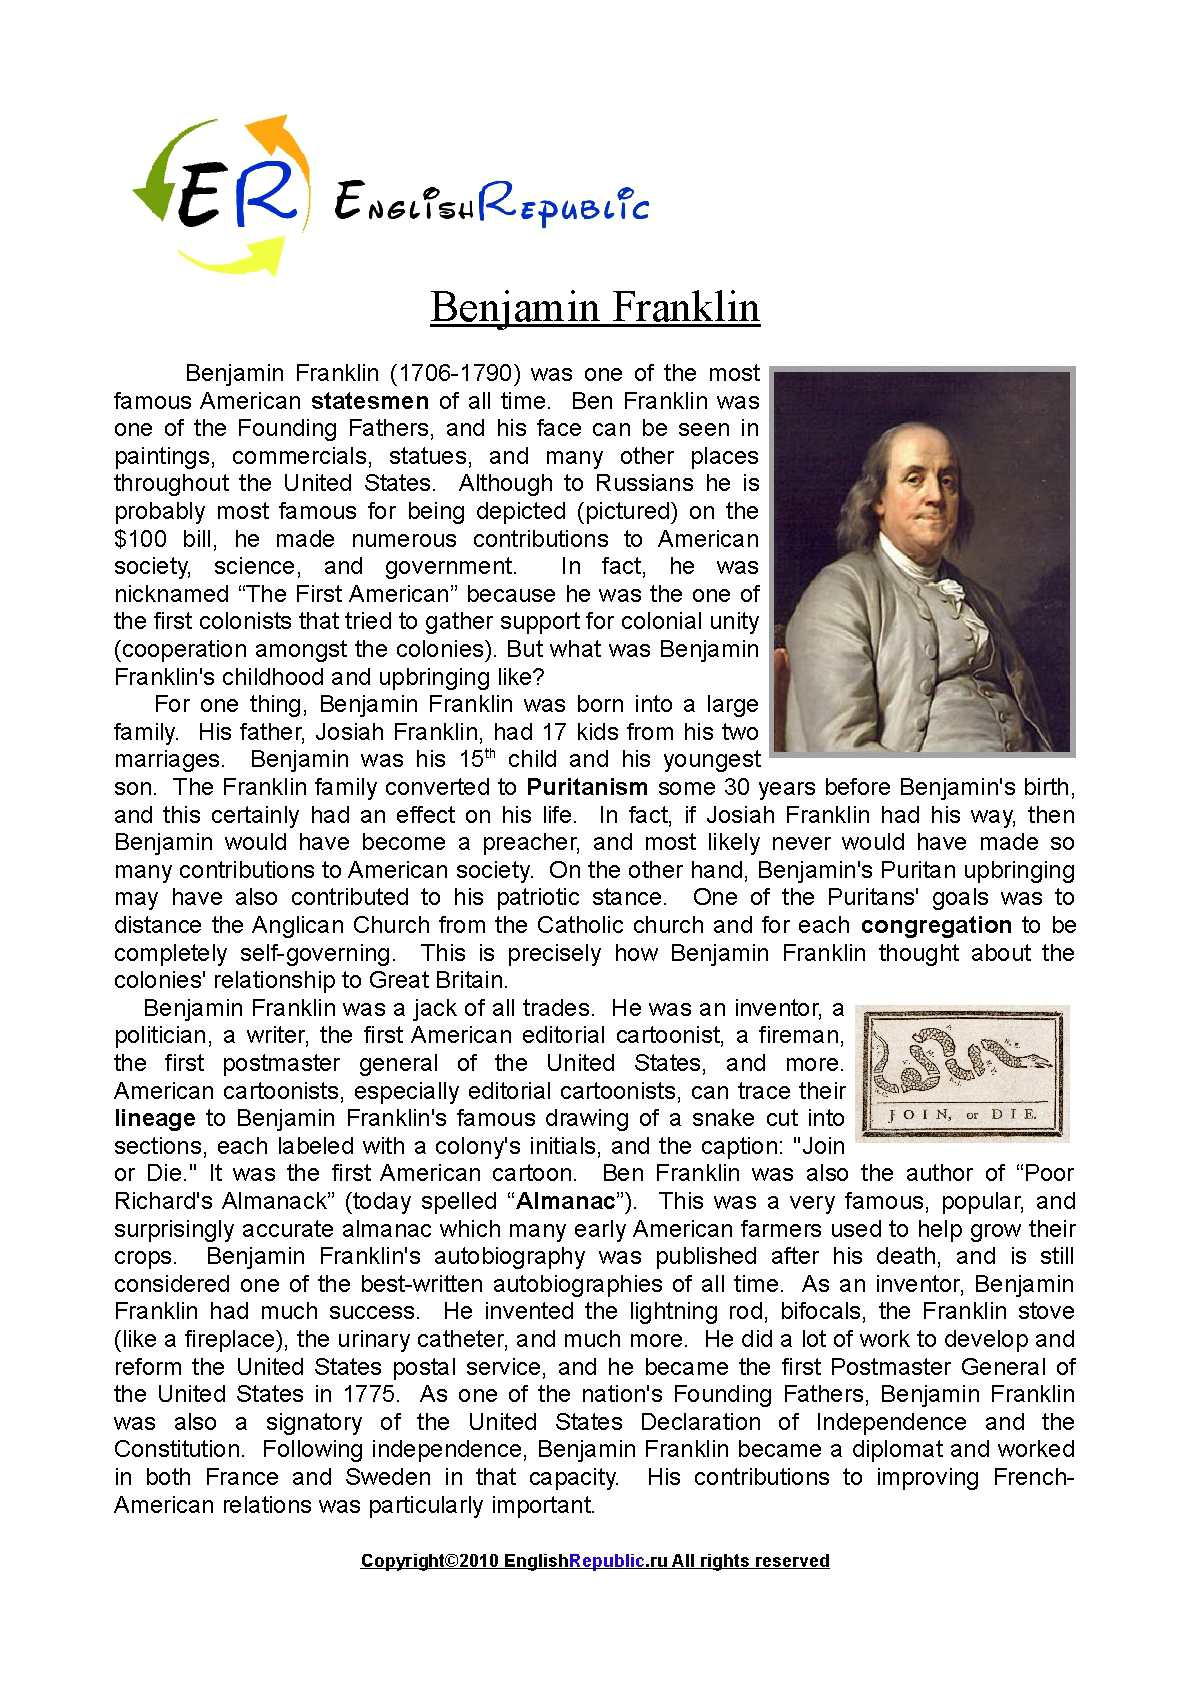 benjamin franklins contribution to american society